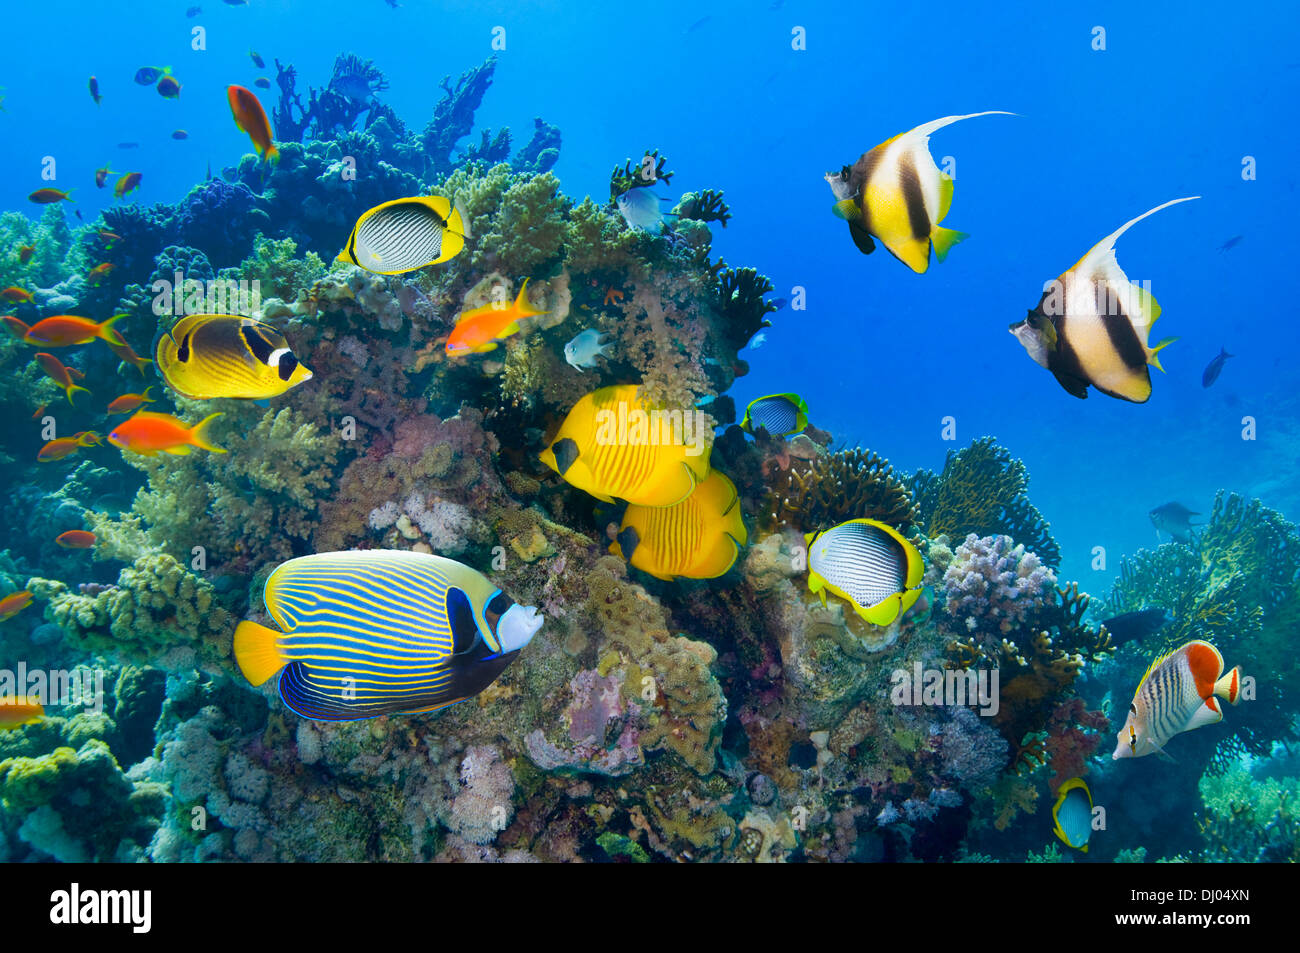 Coral reef scenery with Golden butterflyfish and Red Sea bannerfish - Stock Image